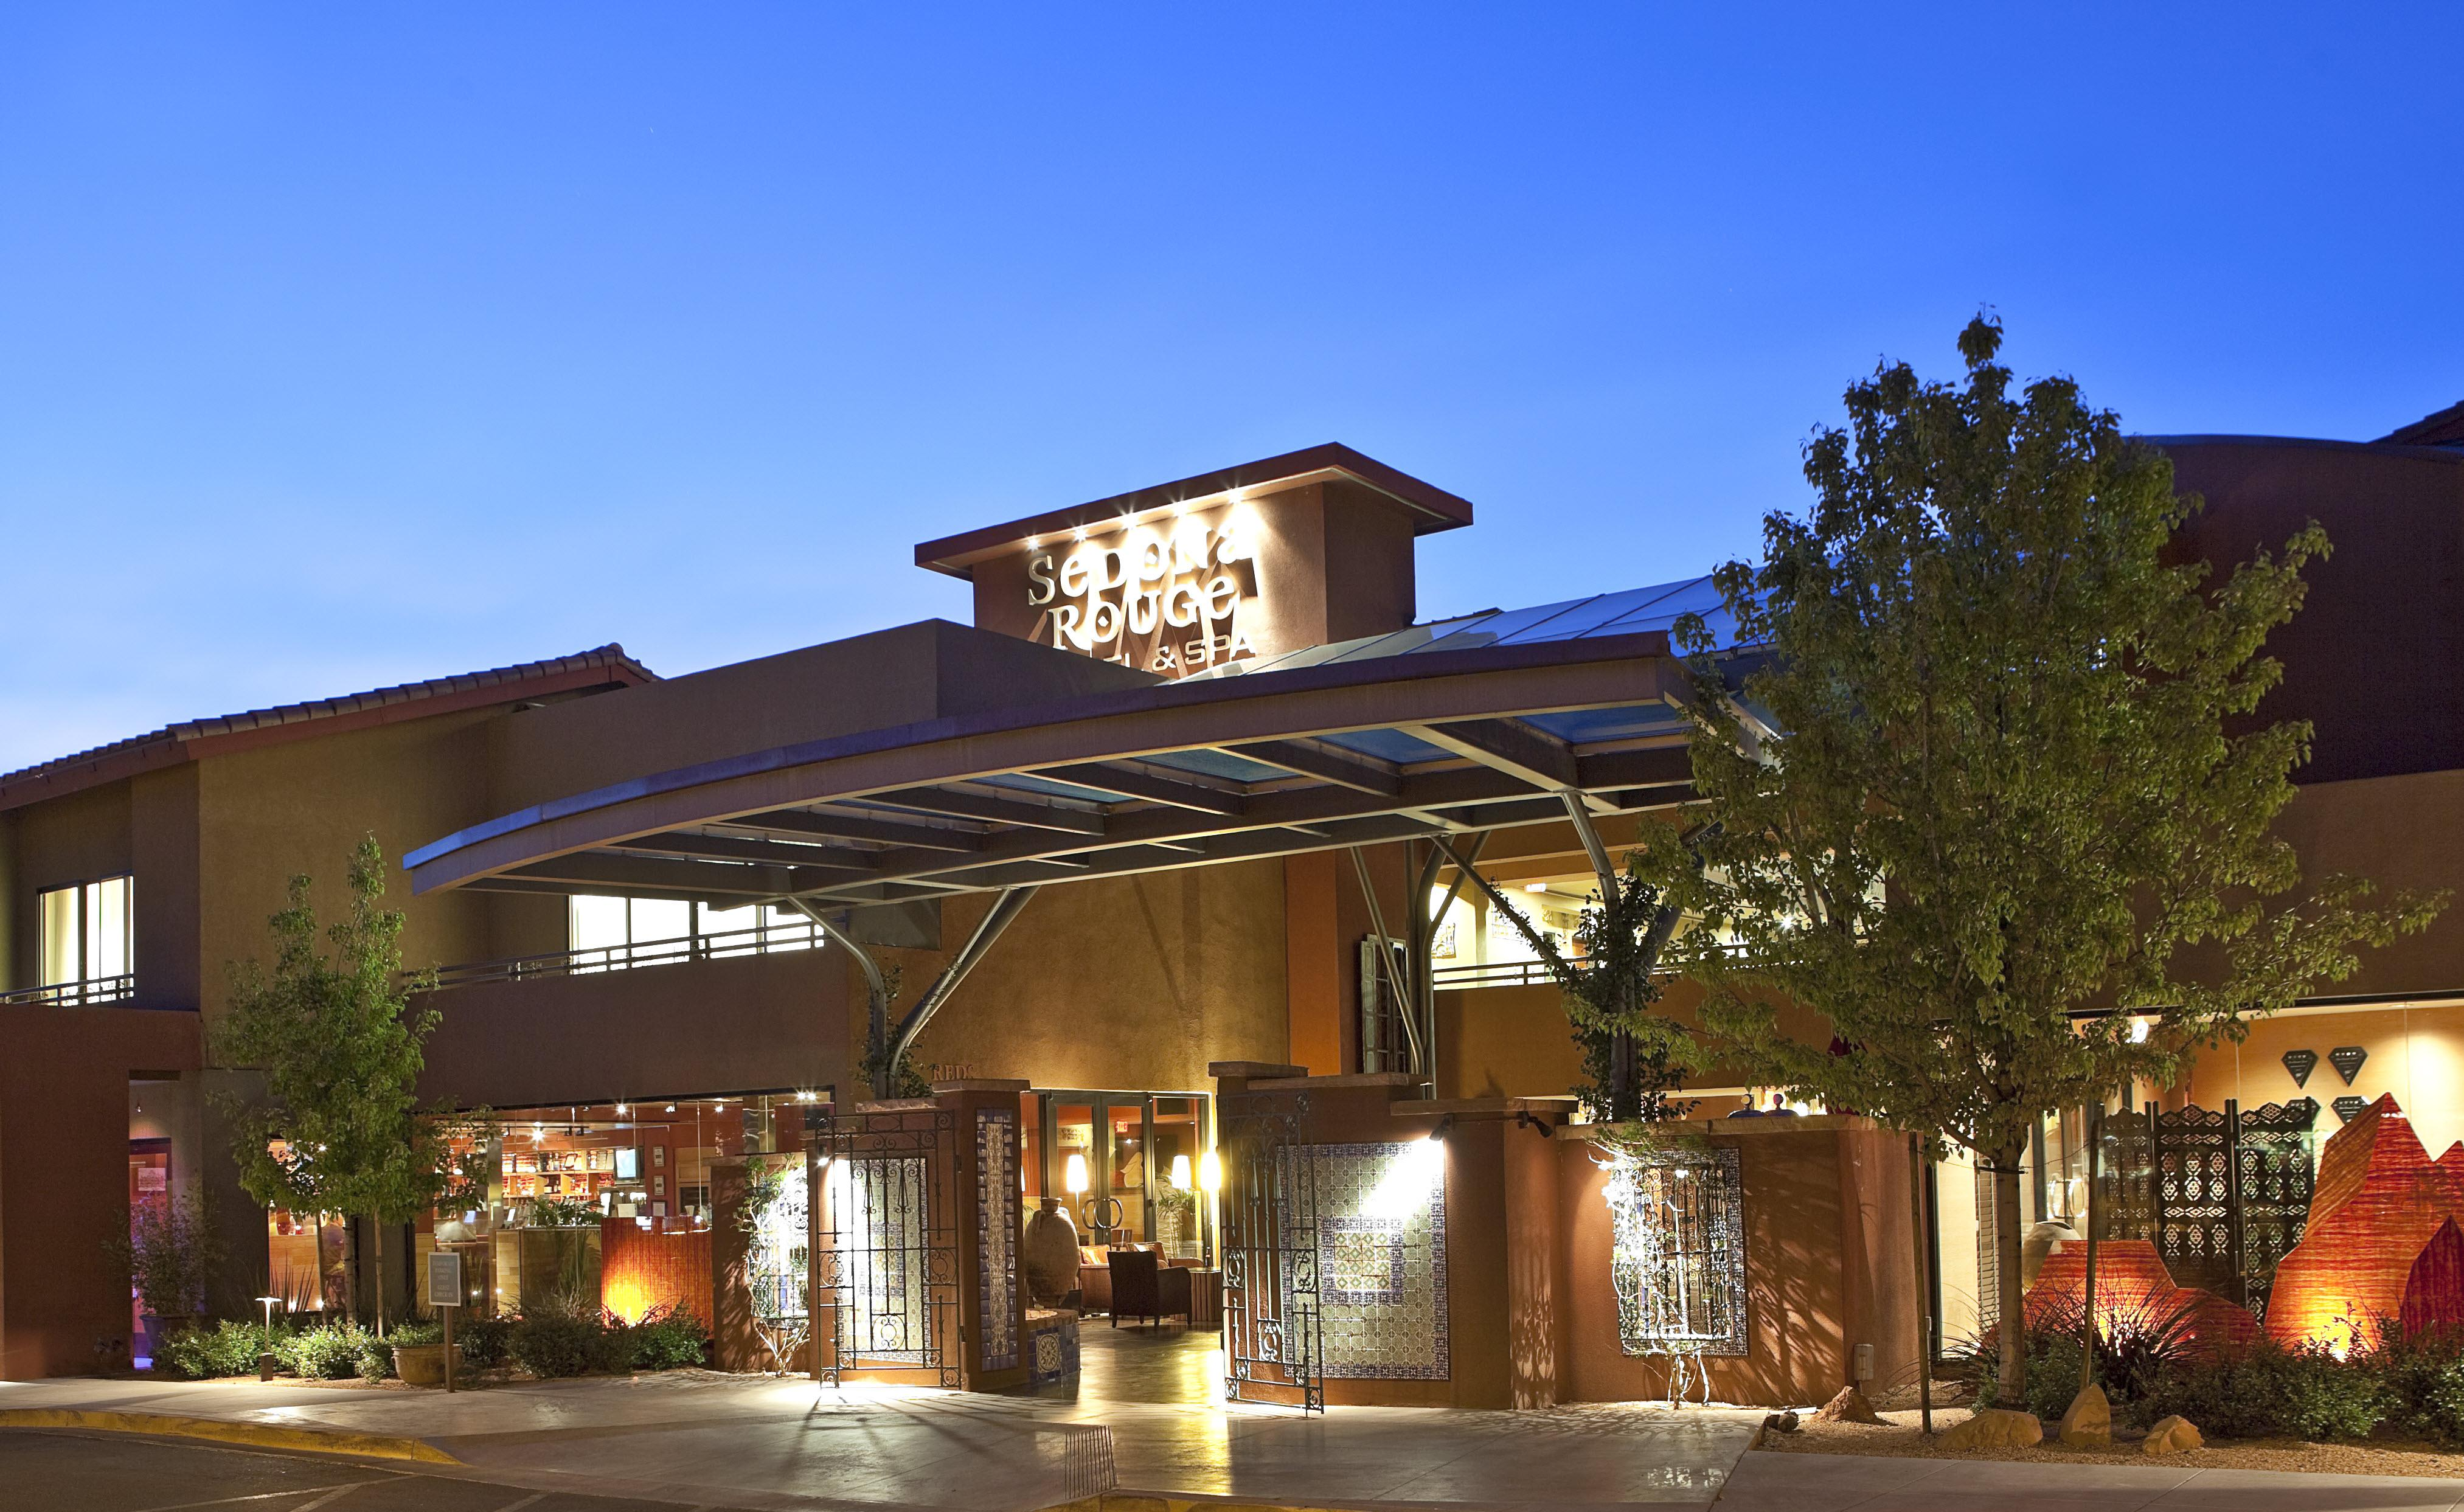 Image of the front of Sedona Rouge Hotel & Spa